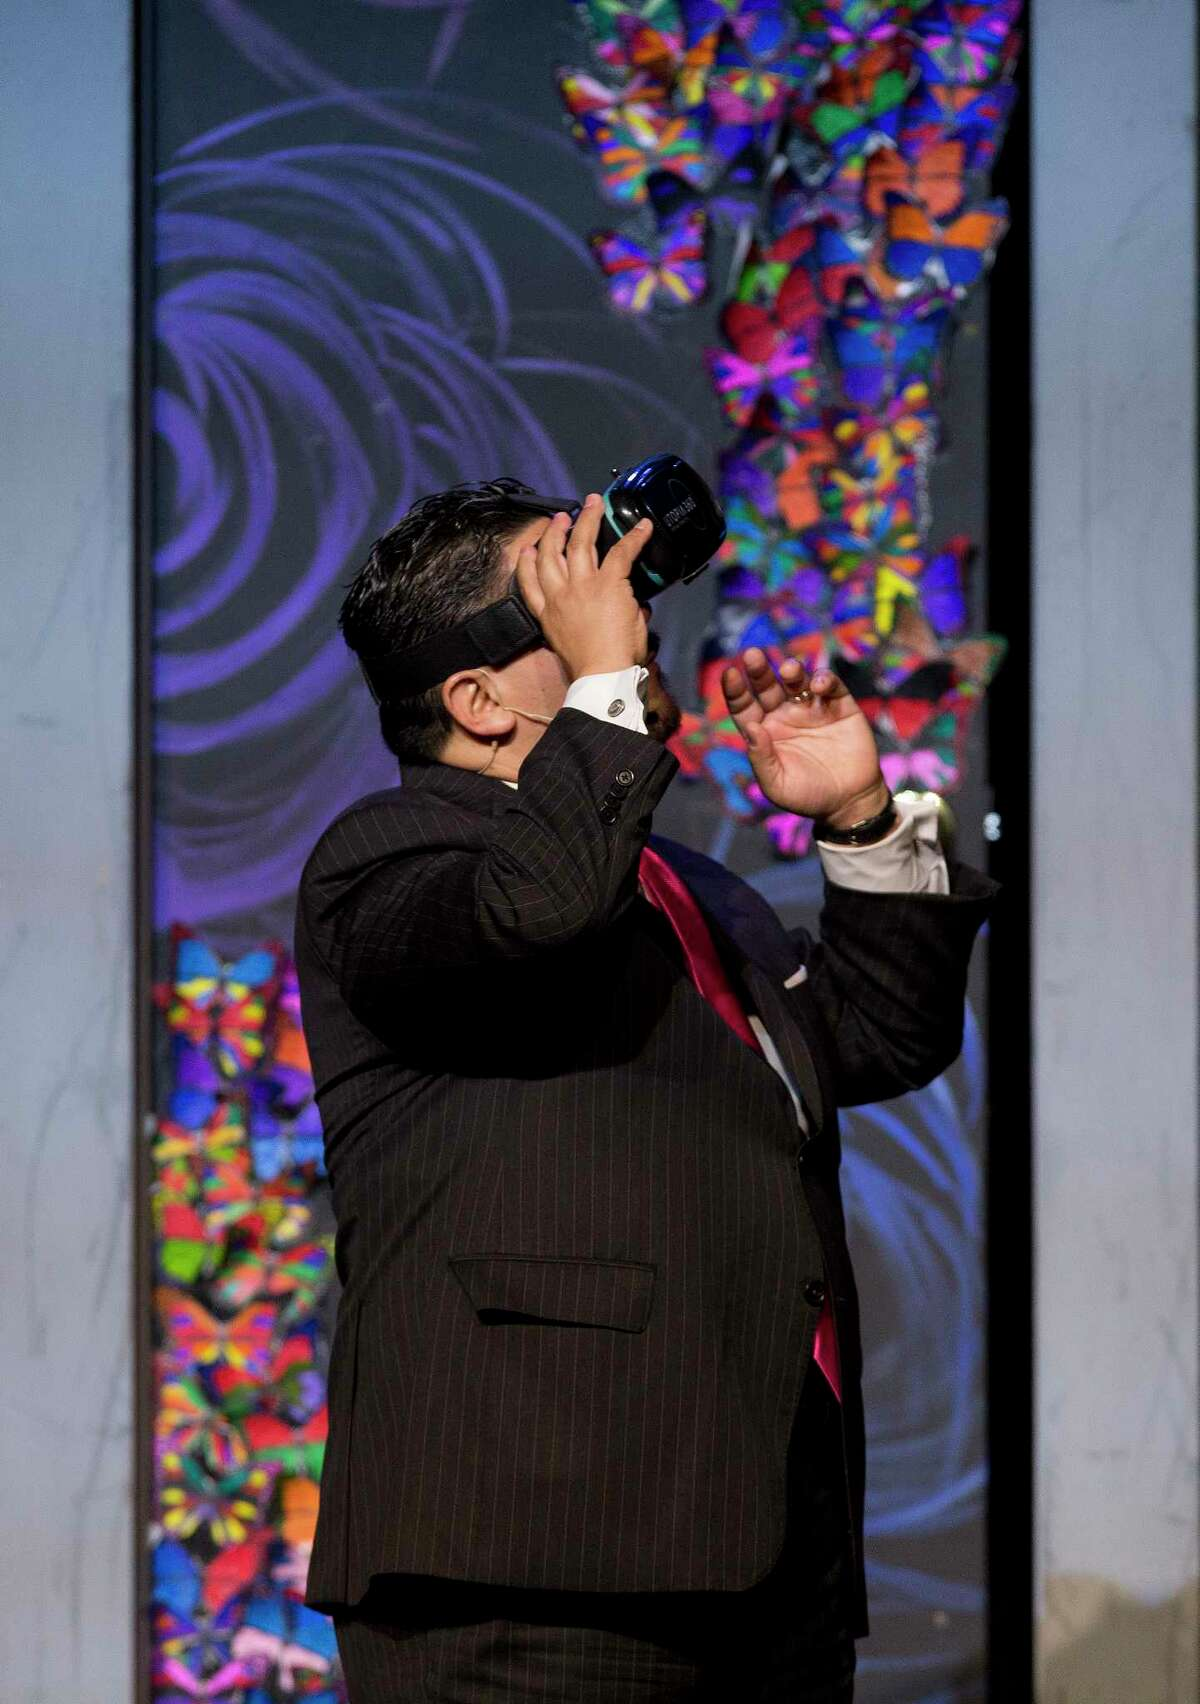 HISD Superintendent Richard Carranza uses virtual reality goggles to take a tour of of the districts' schools as he spoke to roughly 1,500 members of Houston's business, non-profit- and faith-based community in attendance for the annual State of the Schools address at Hilton Americas Hotel Thursday, Feb. 15, 2018, in Houston.